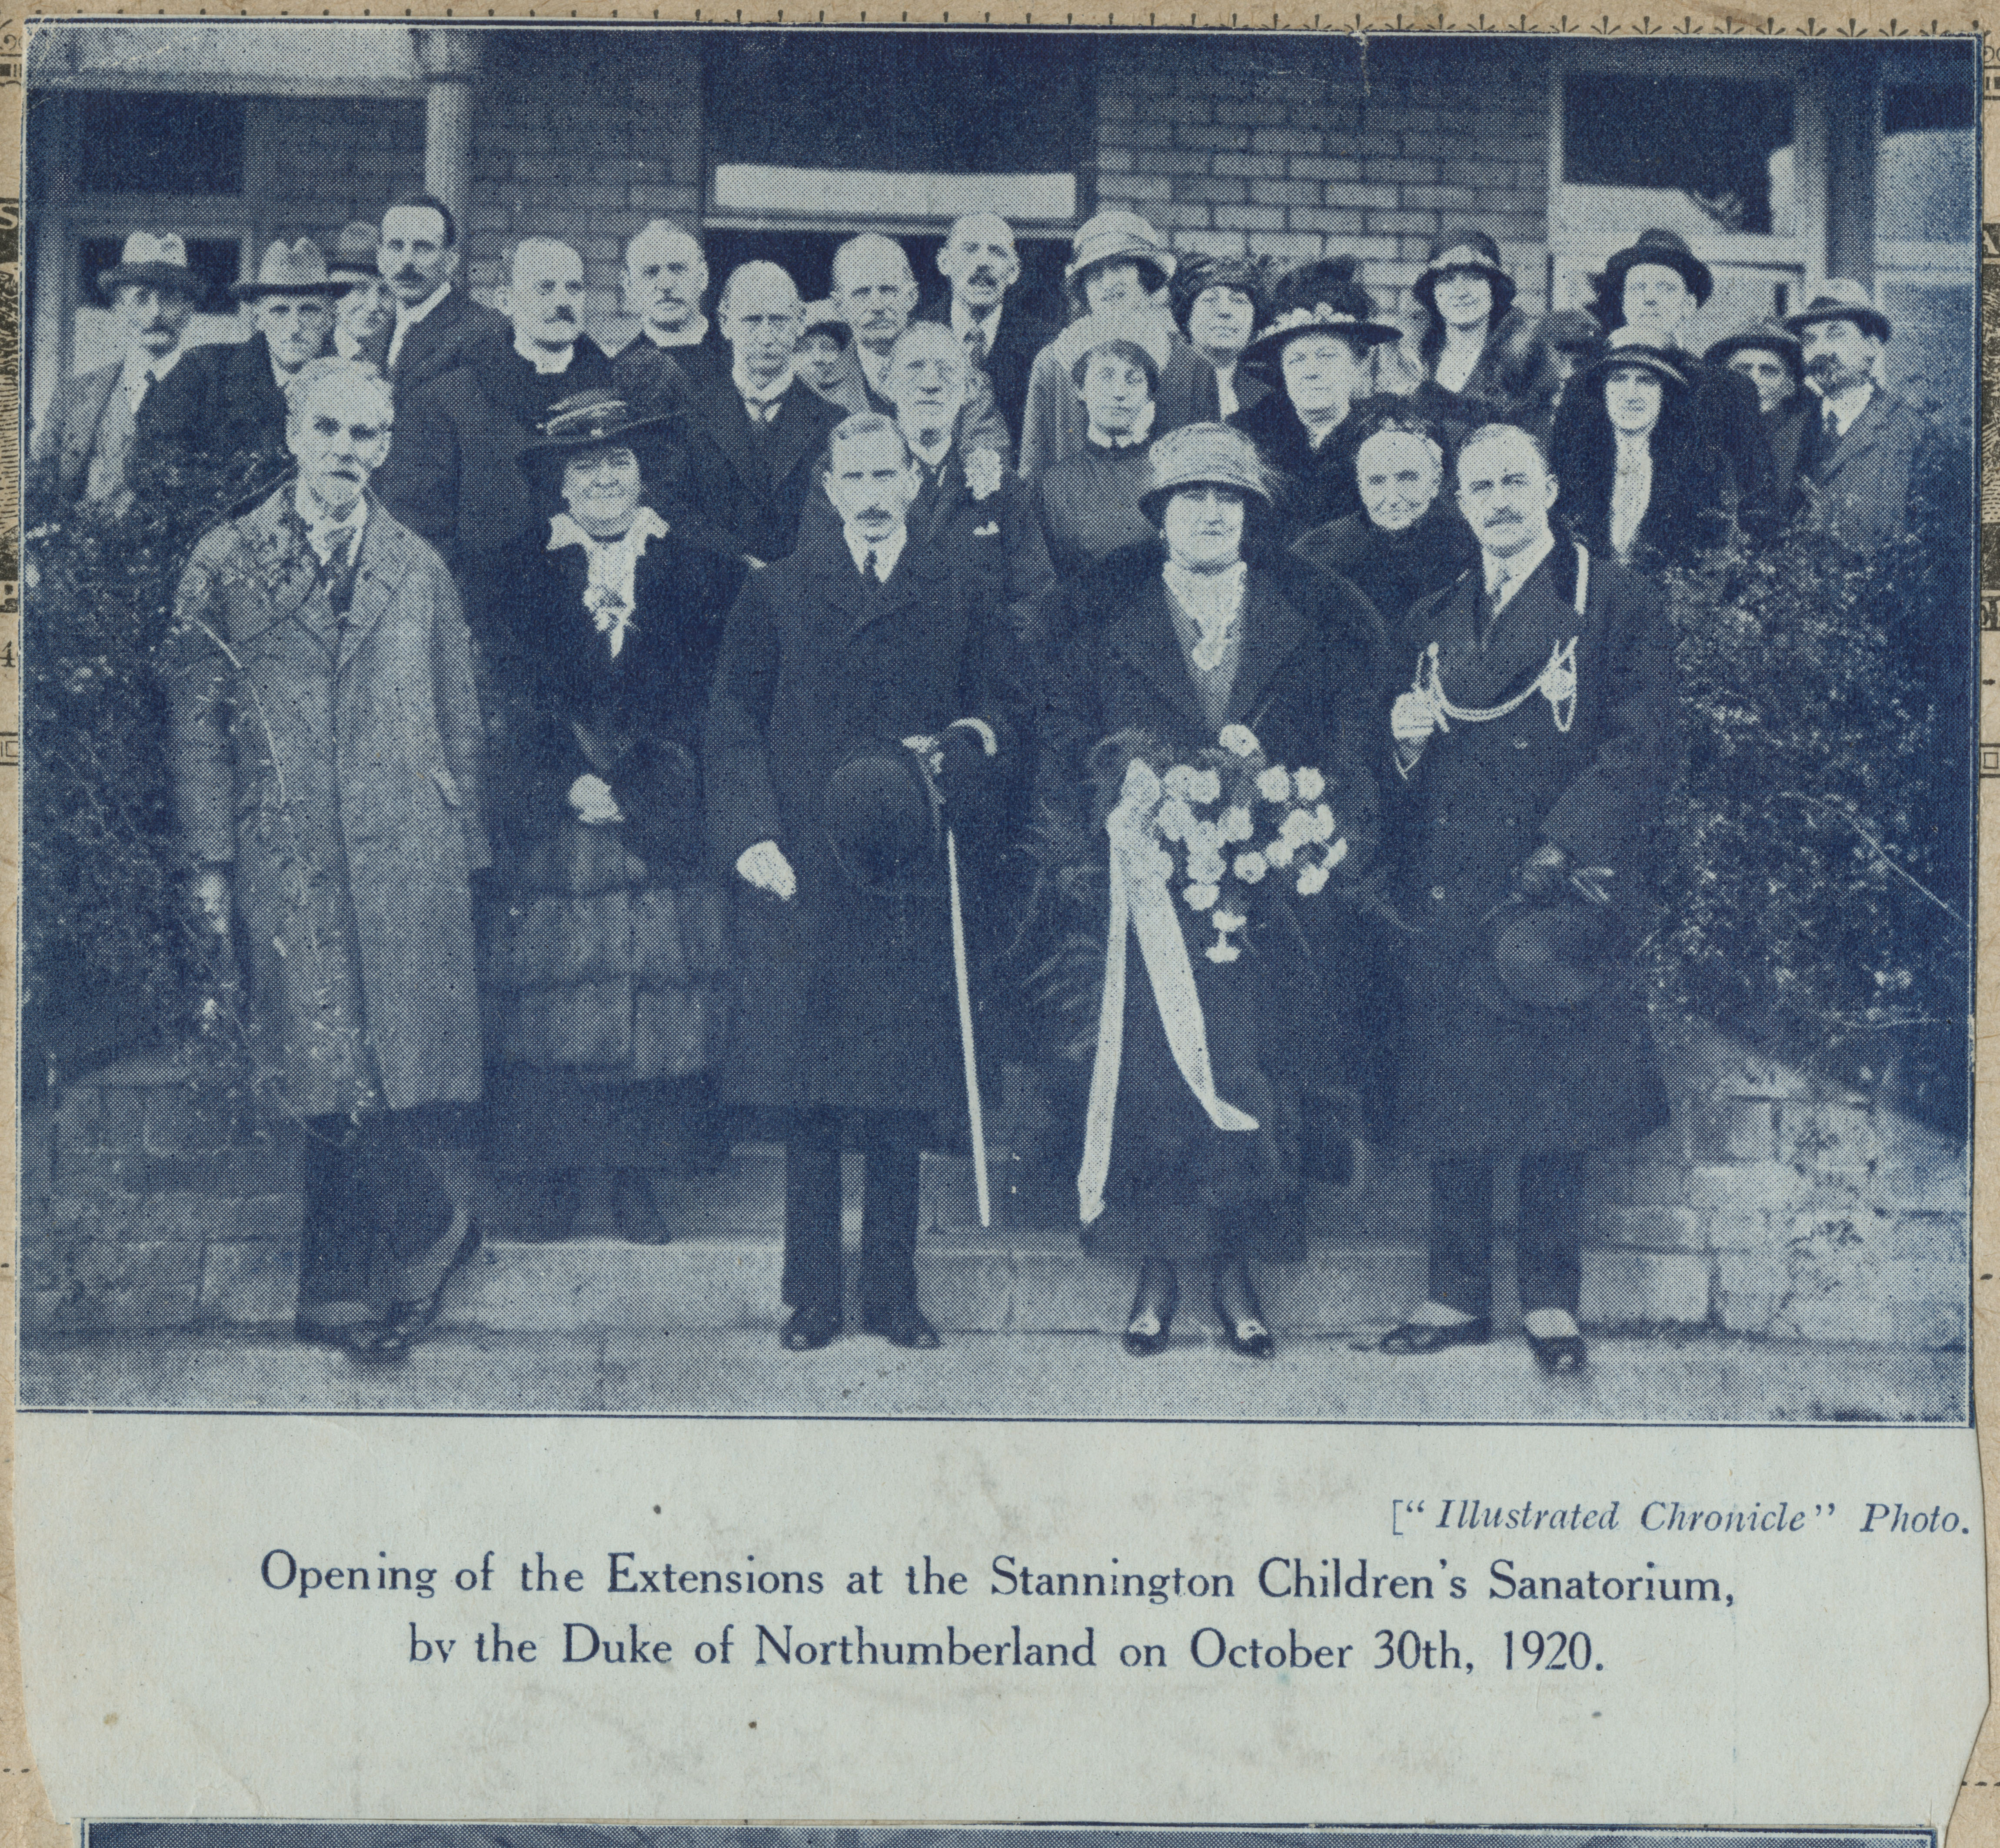 Opening of the Additional Wings by the Duke of Northumberland 30th October 1920 (NRO 10361-01-05).